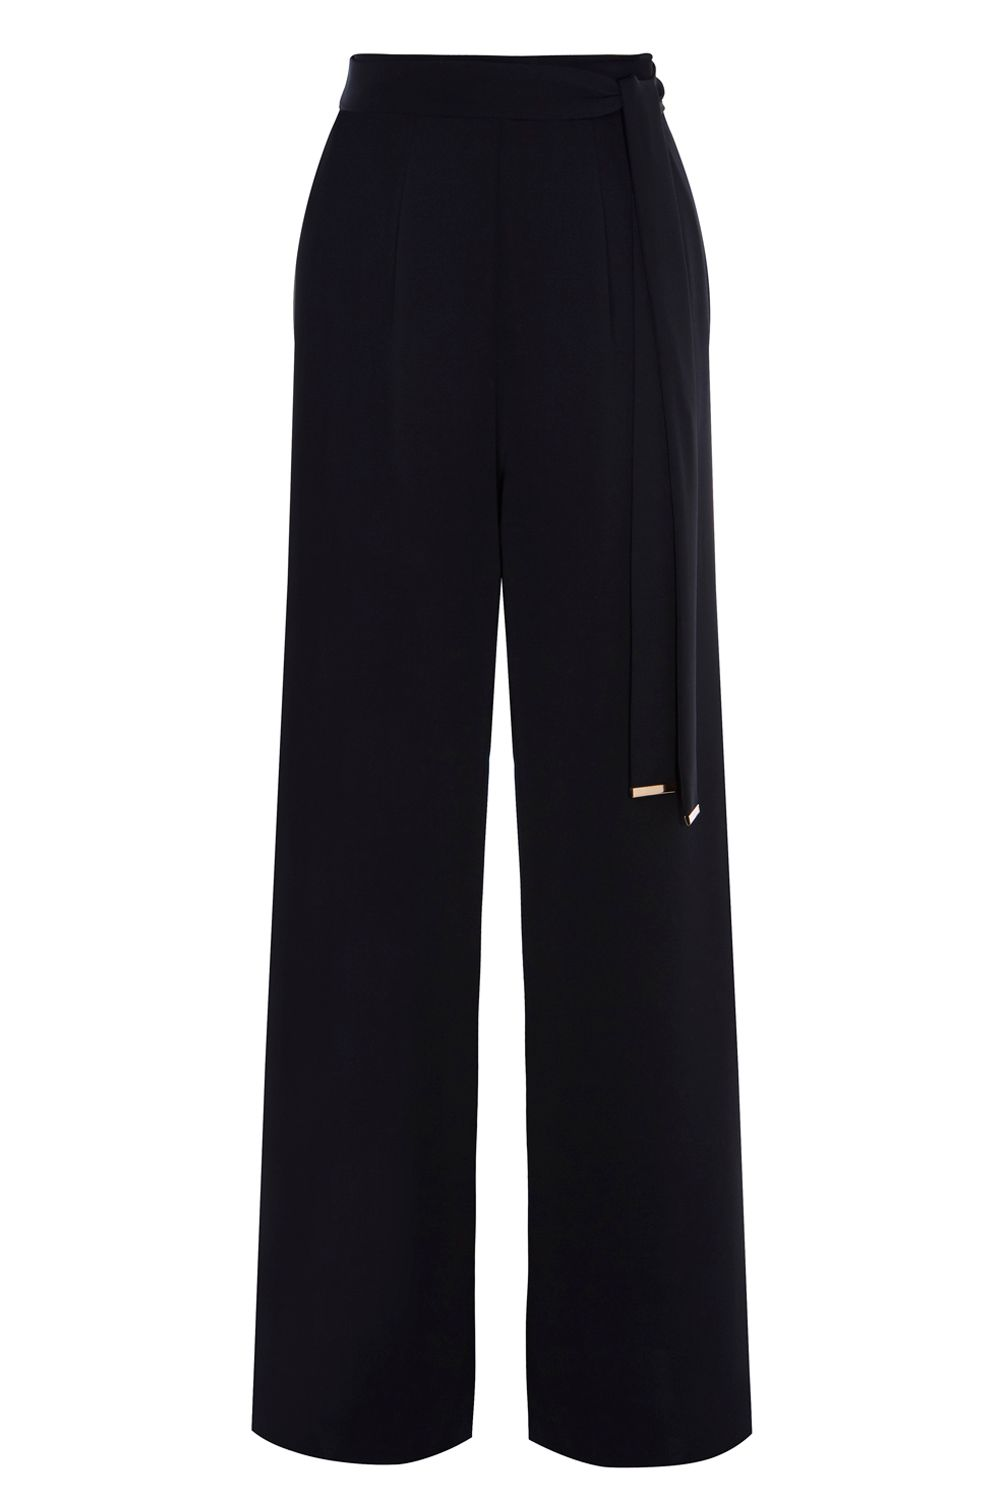 Coast Coast Megan Wide Leg Trousers, Black